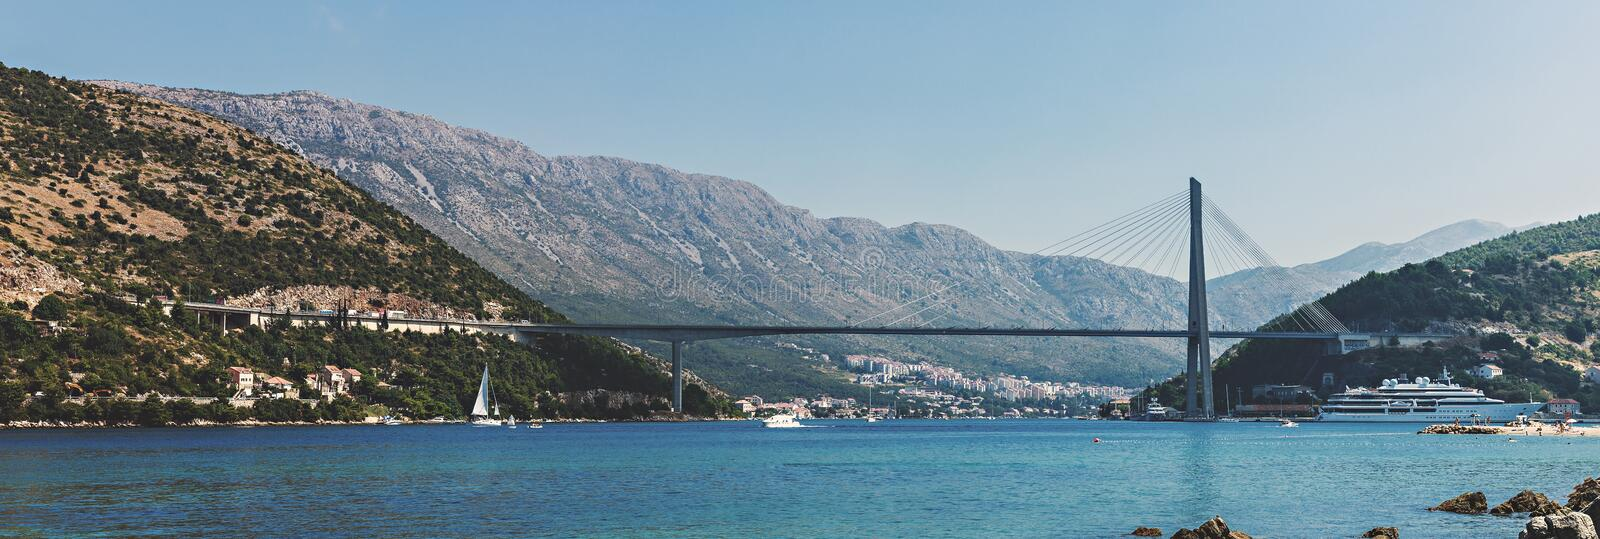 Landscape Photography of Body of Water royalty free stock photography